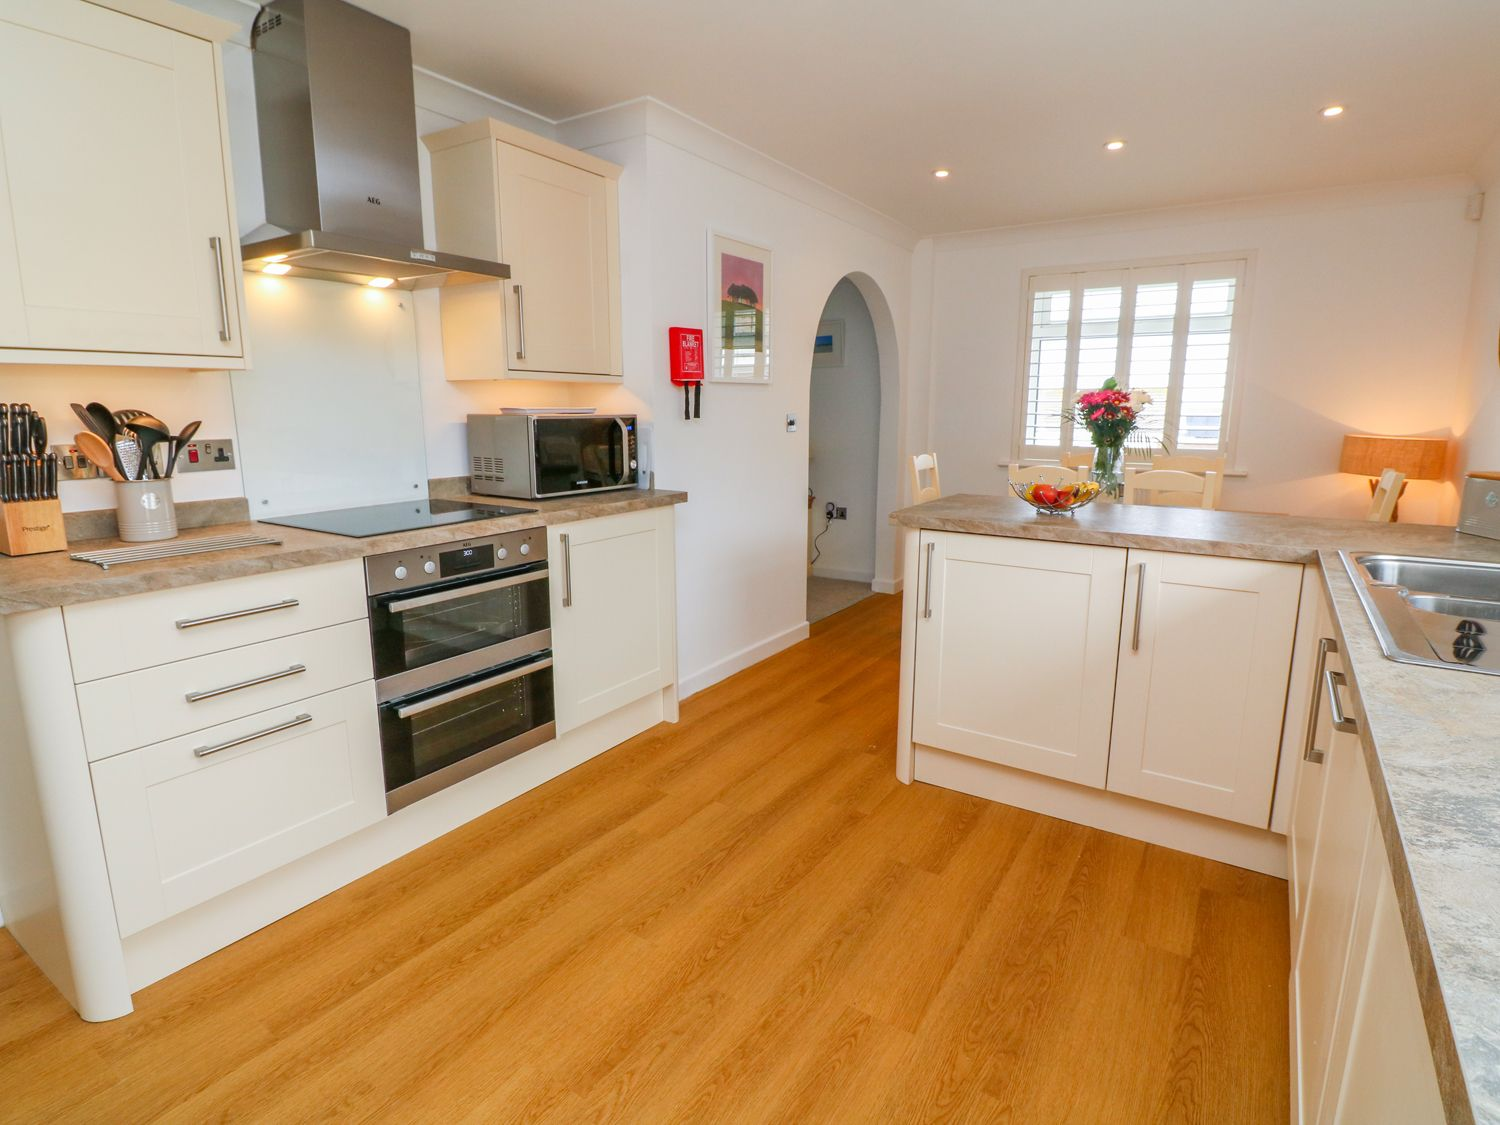 Holywell Bay View in Holywell Bay - sleeps 6 people